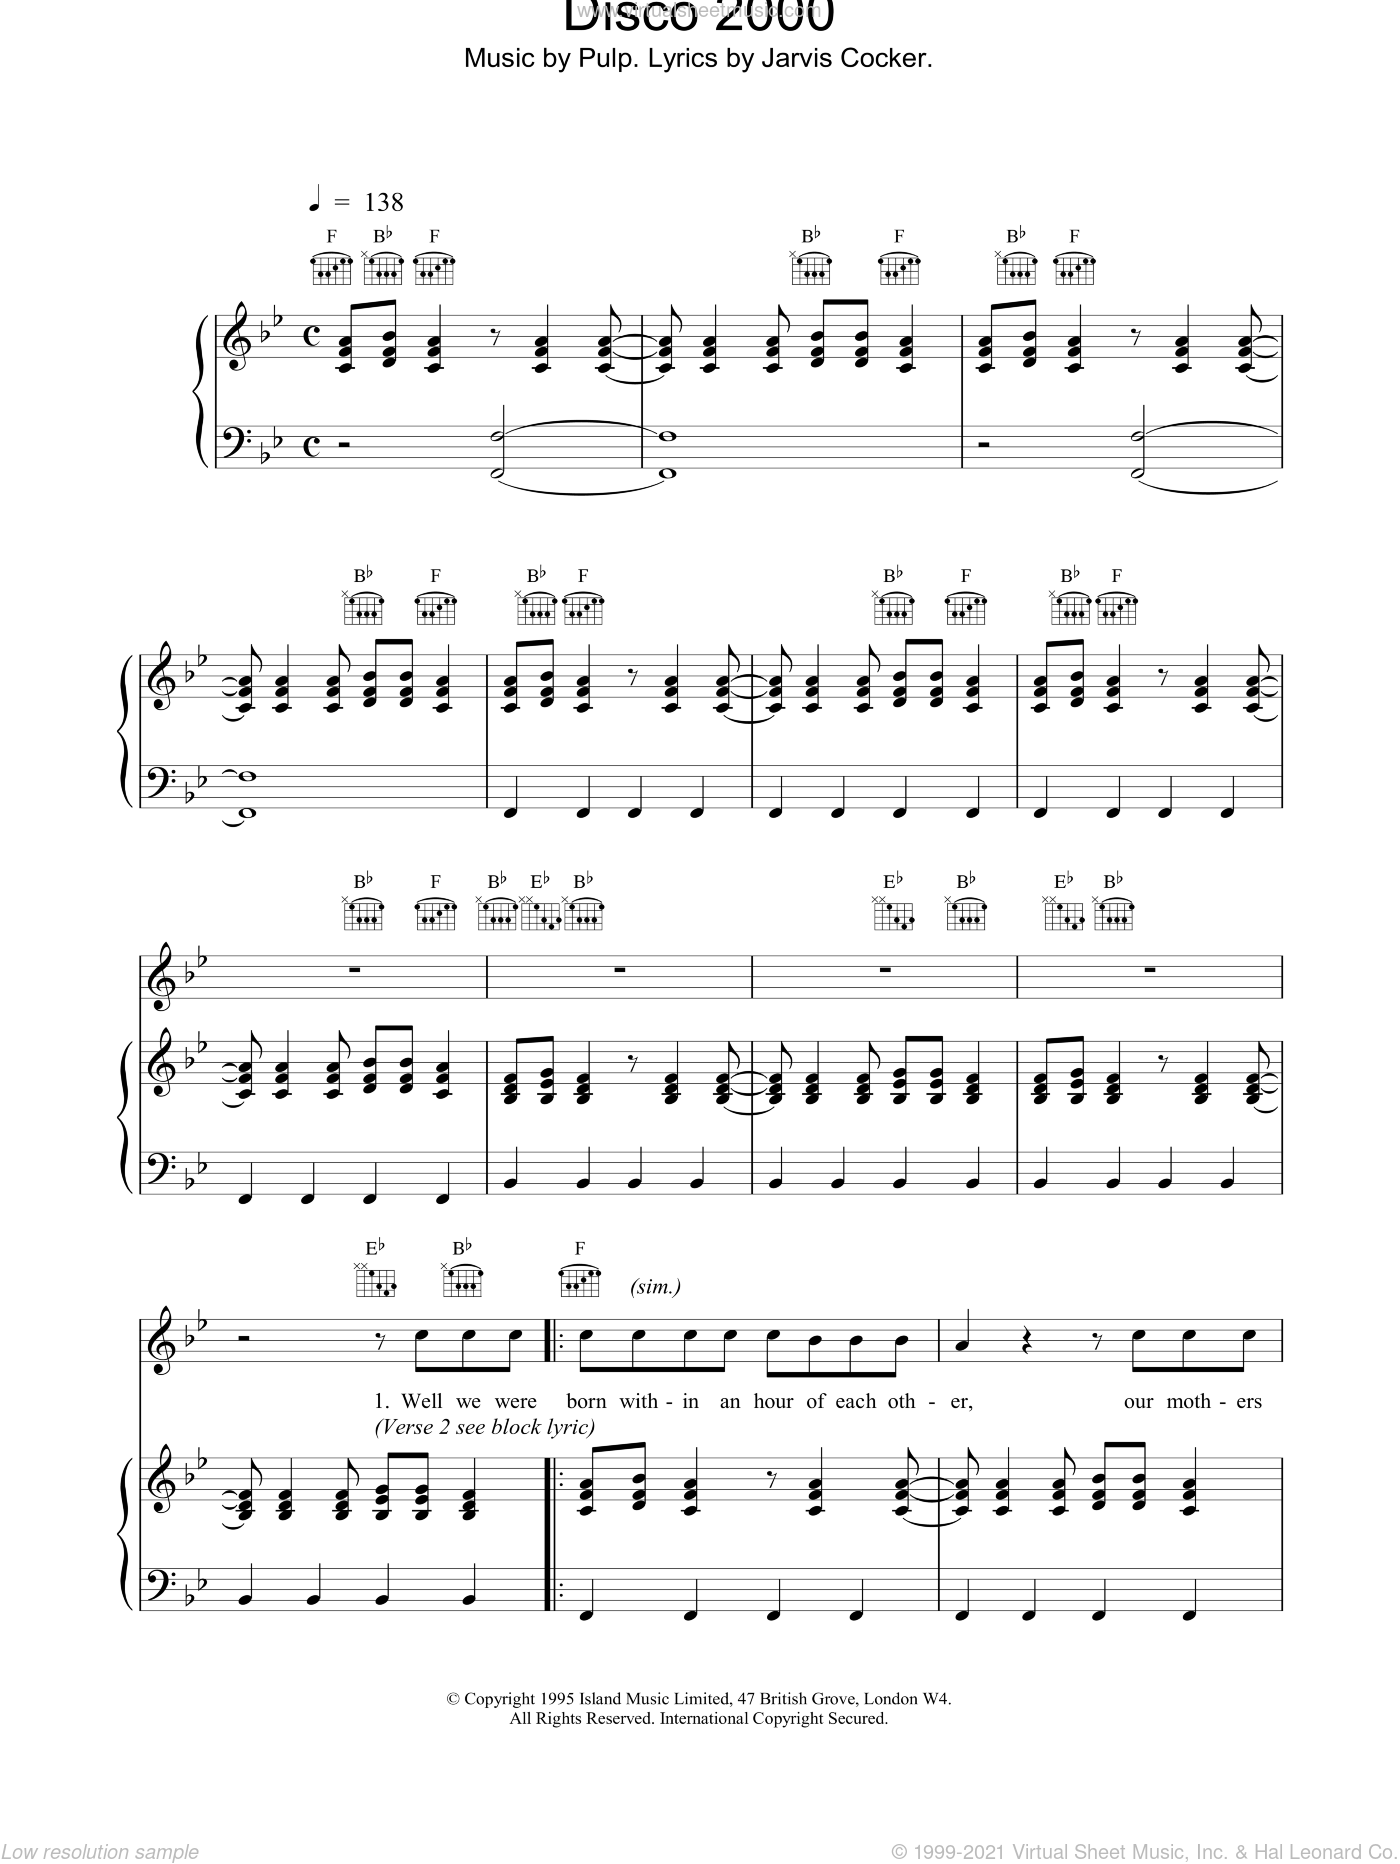 Disco 2000 sheet music for voice, piano or guitar by Pulp